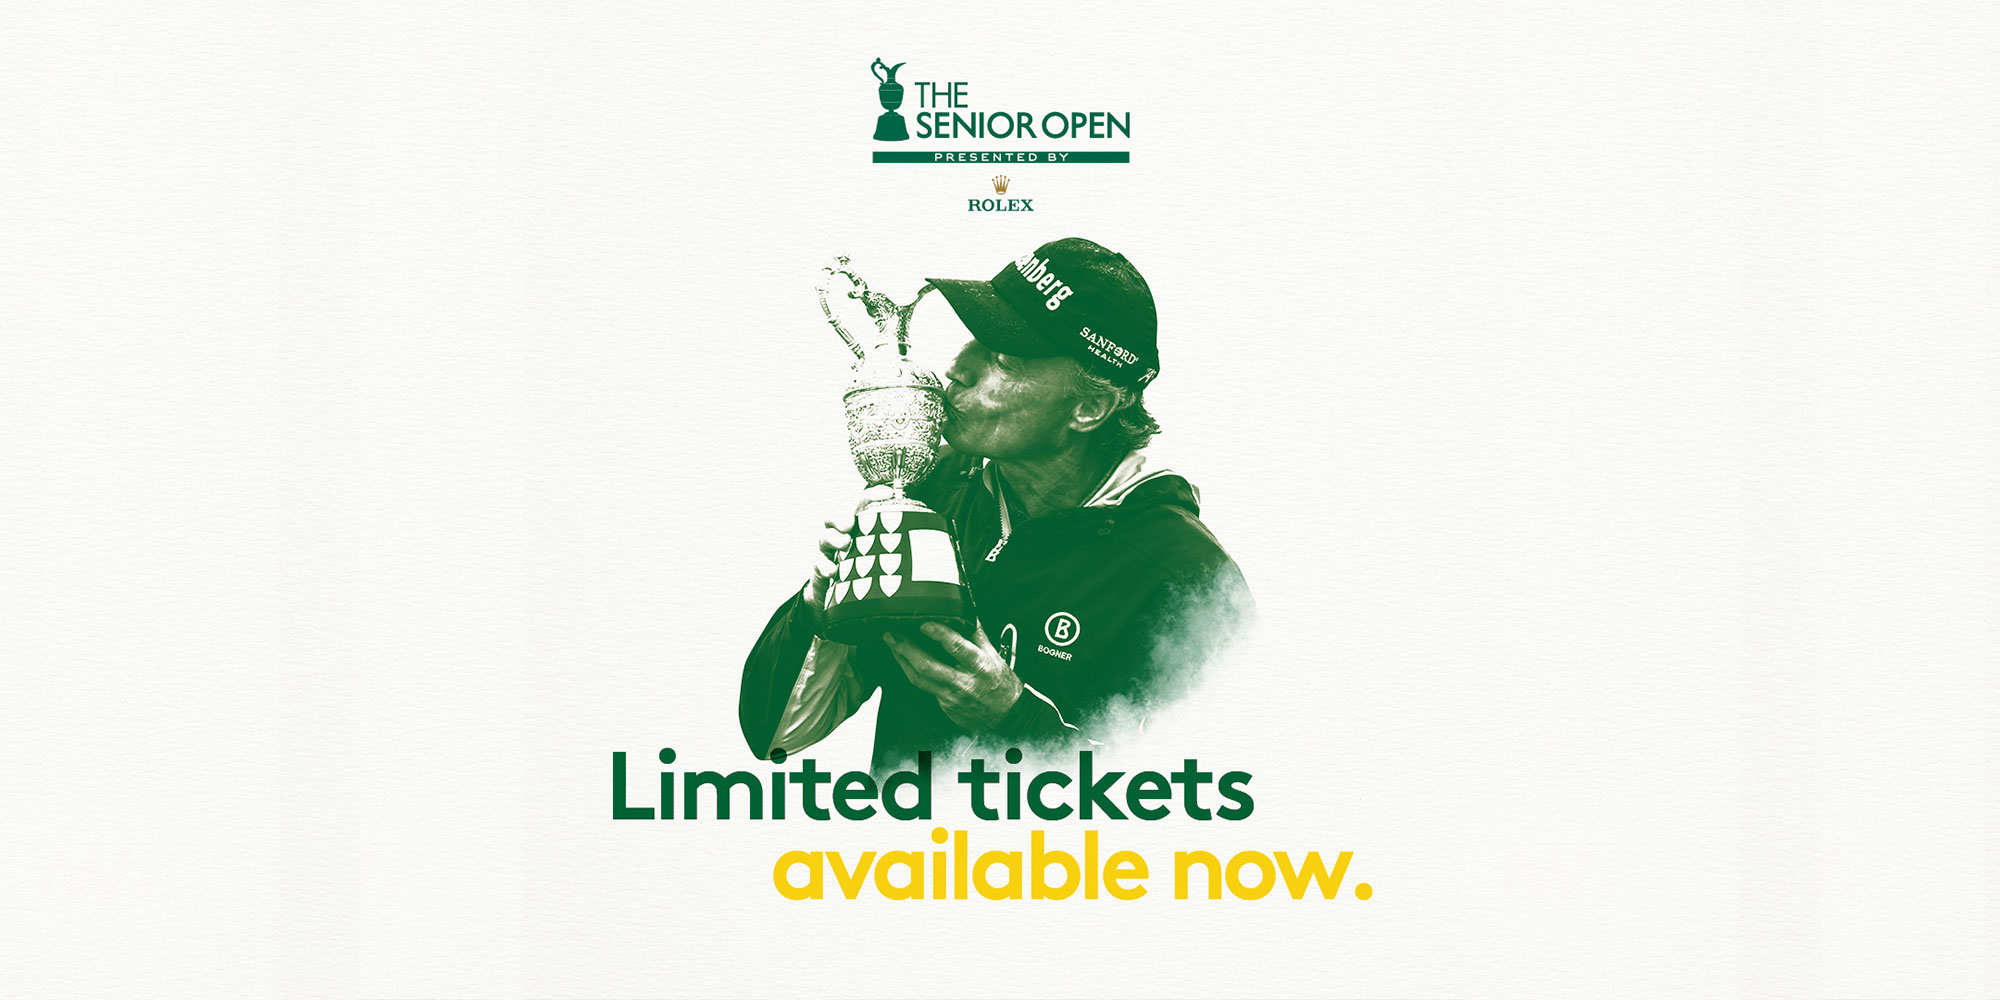 The Senior Open Presented by Rolex - Wednesday